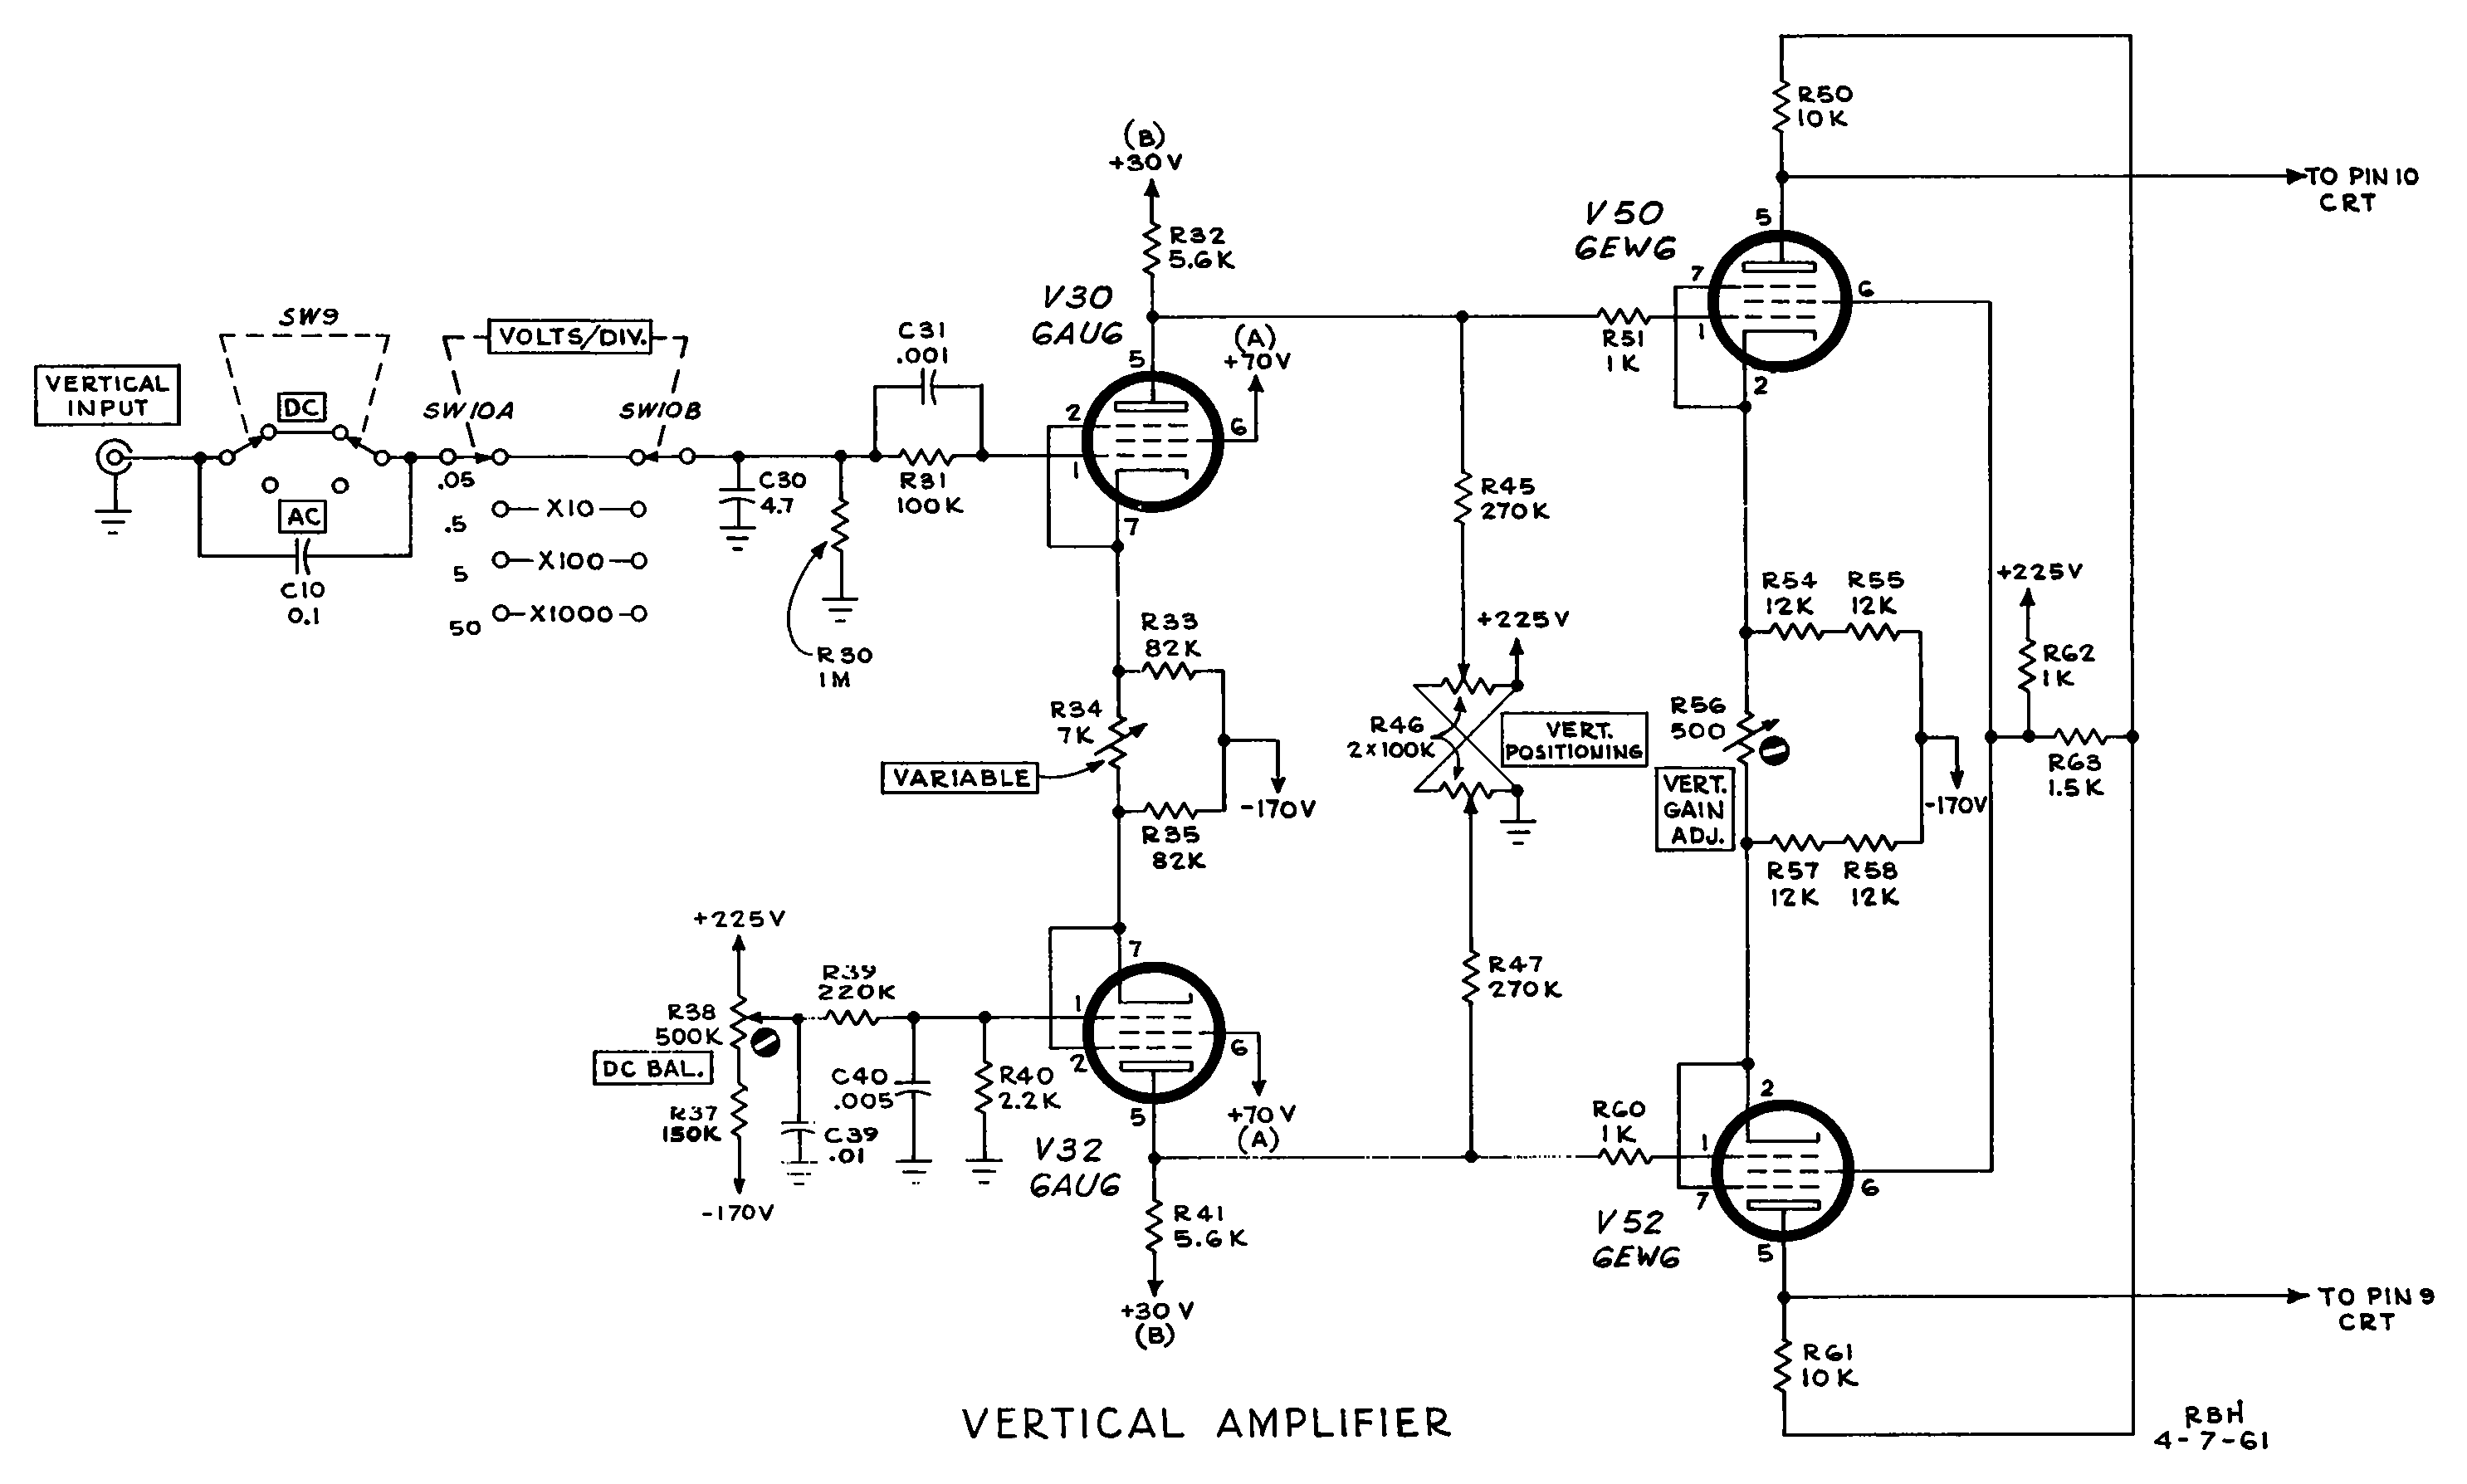 Frequently Asked Questions | Apex Tube Matching on cable tester schematic, tube power supply schematic, vacuum tube schematic symbol, battery tester schematic, vacuum tube alarm clock, led tester schematic, vacuum amplifier schematic, vacuum tube voltmeter schematic, vacuum tube diagram, capacitor tester schematic, vacuum tube amplifier, vacuum tube pin layout, diode schematic, vacuum generator schematic, vacuum tube preamp schematic, vacuum tube radio schematics, vacuum tube computer schematic, vacuum tube power supply design, vacuum tube tv, vacuum tube testers retail store,